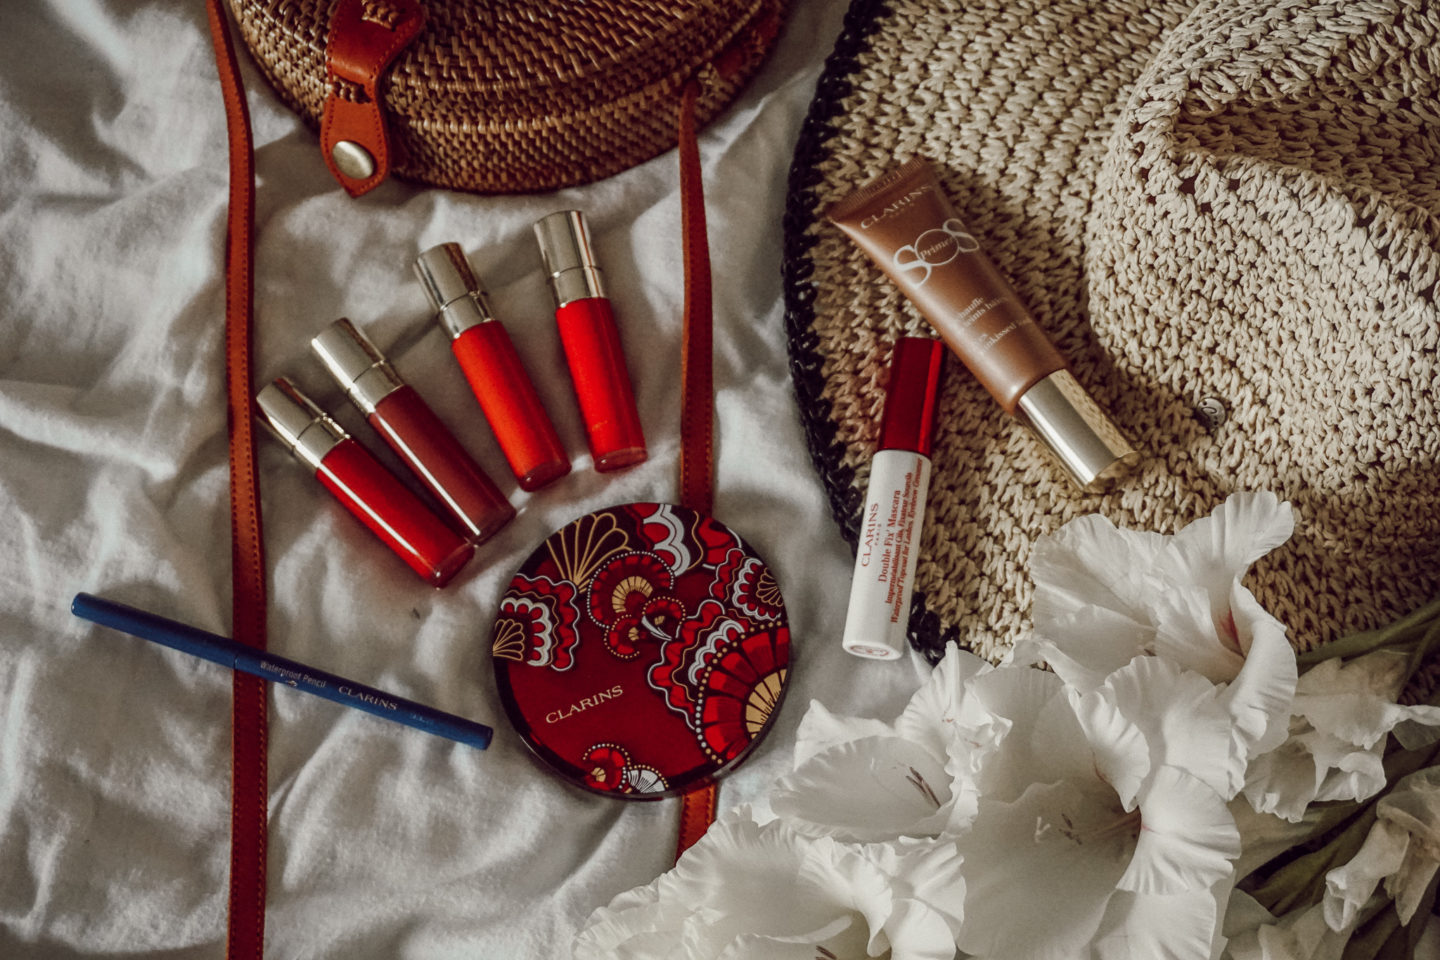 Clarins Summer Make-up Collection 2019